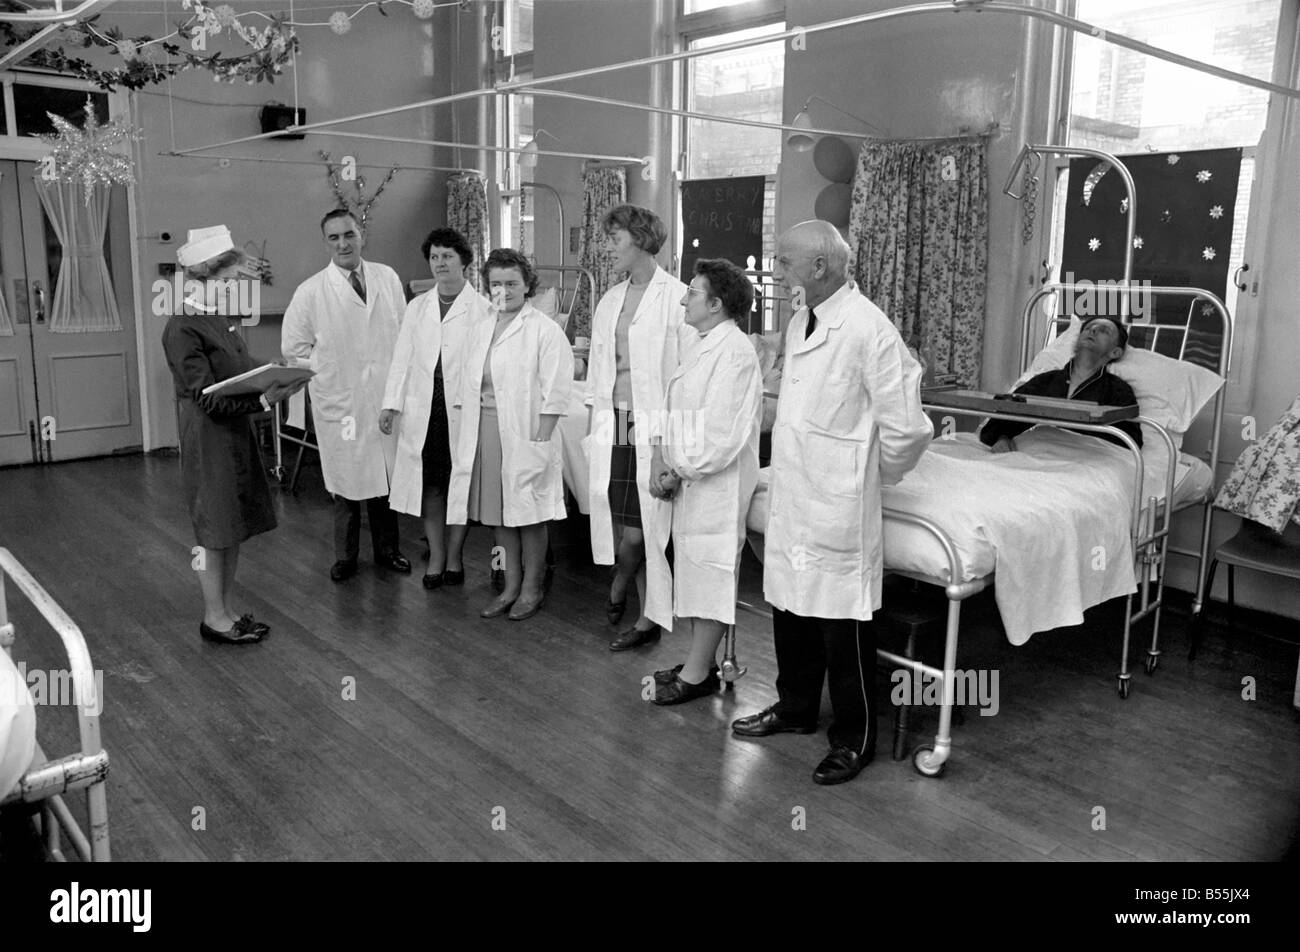 The Good Samaritans stand on parade in a hospital ward. They are some of the volunteers who stopped a small hospital - Stock Image